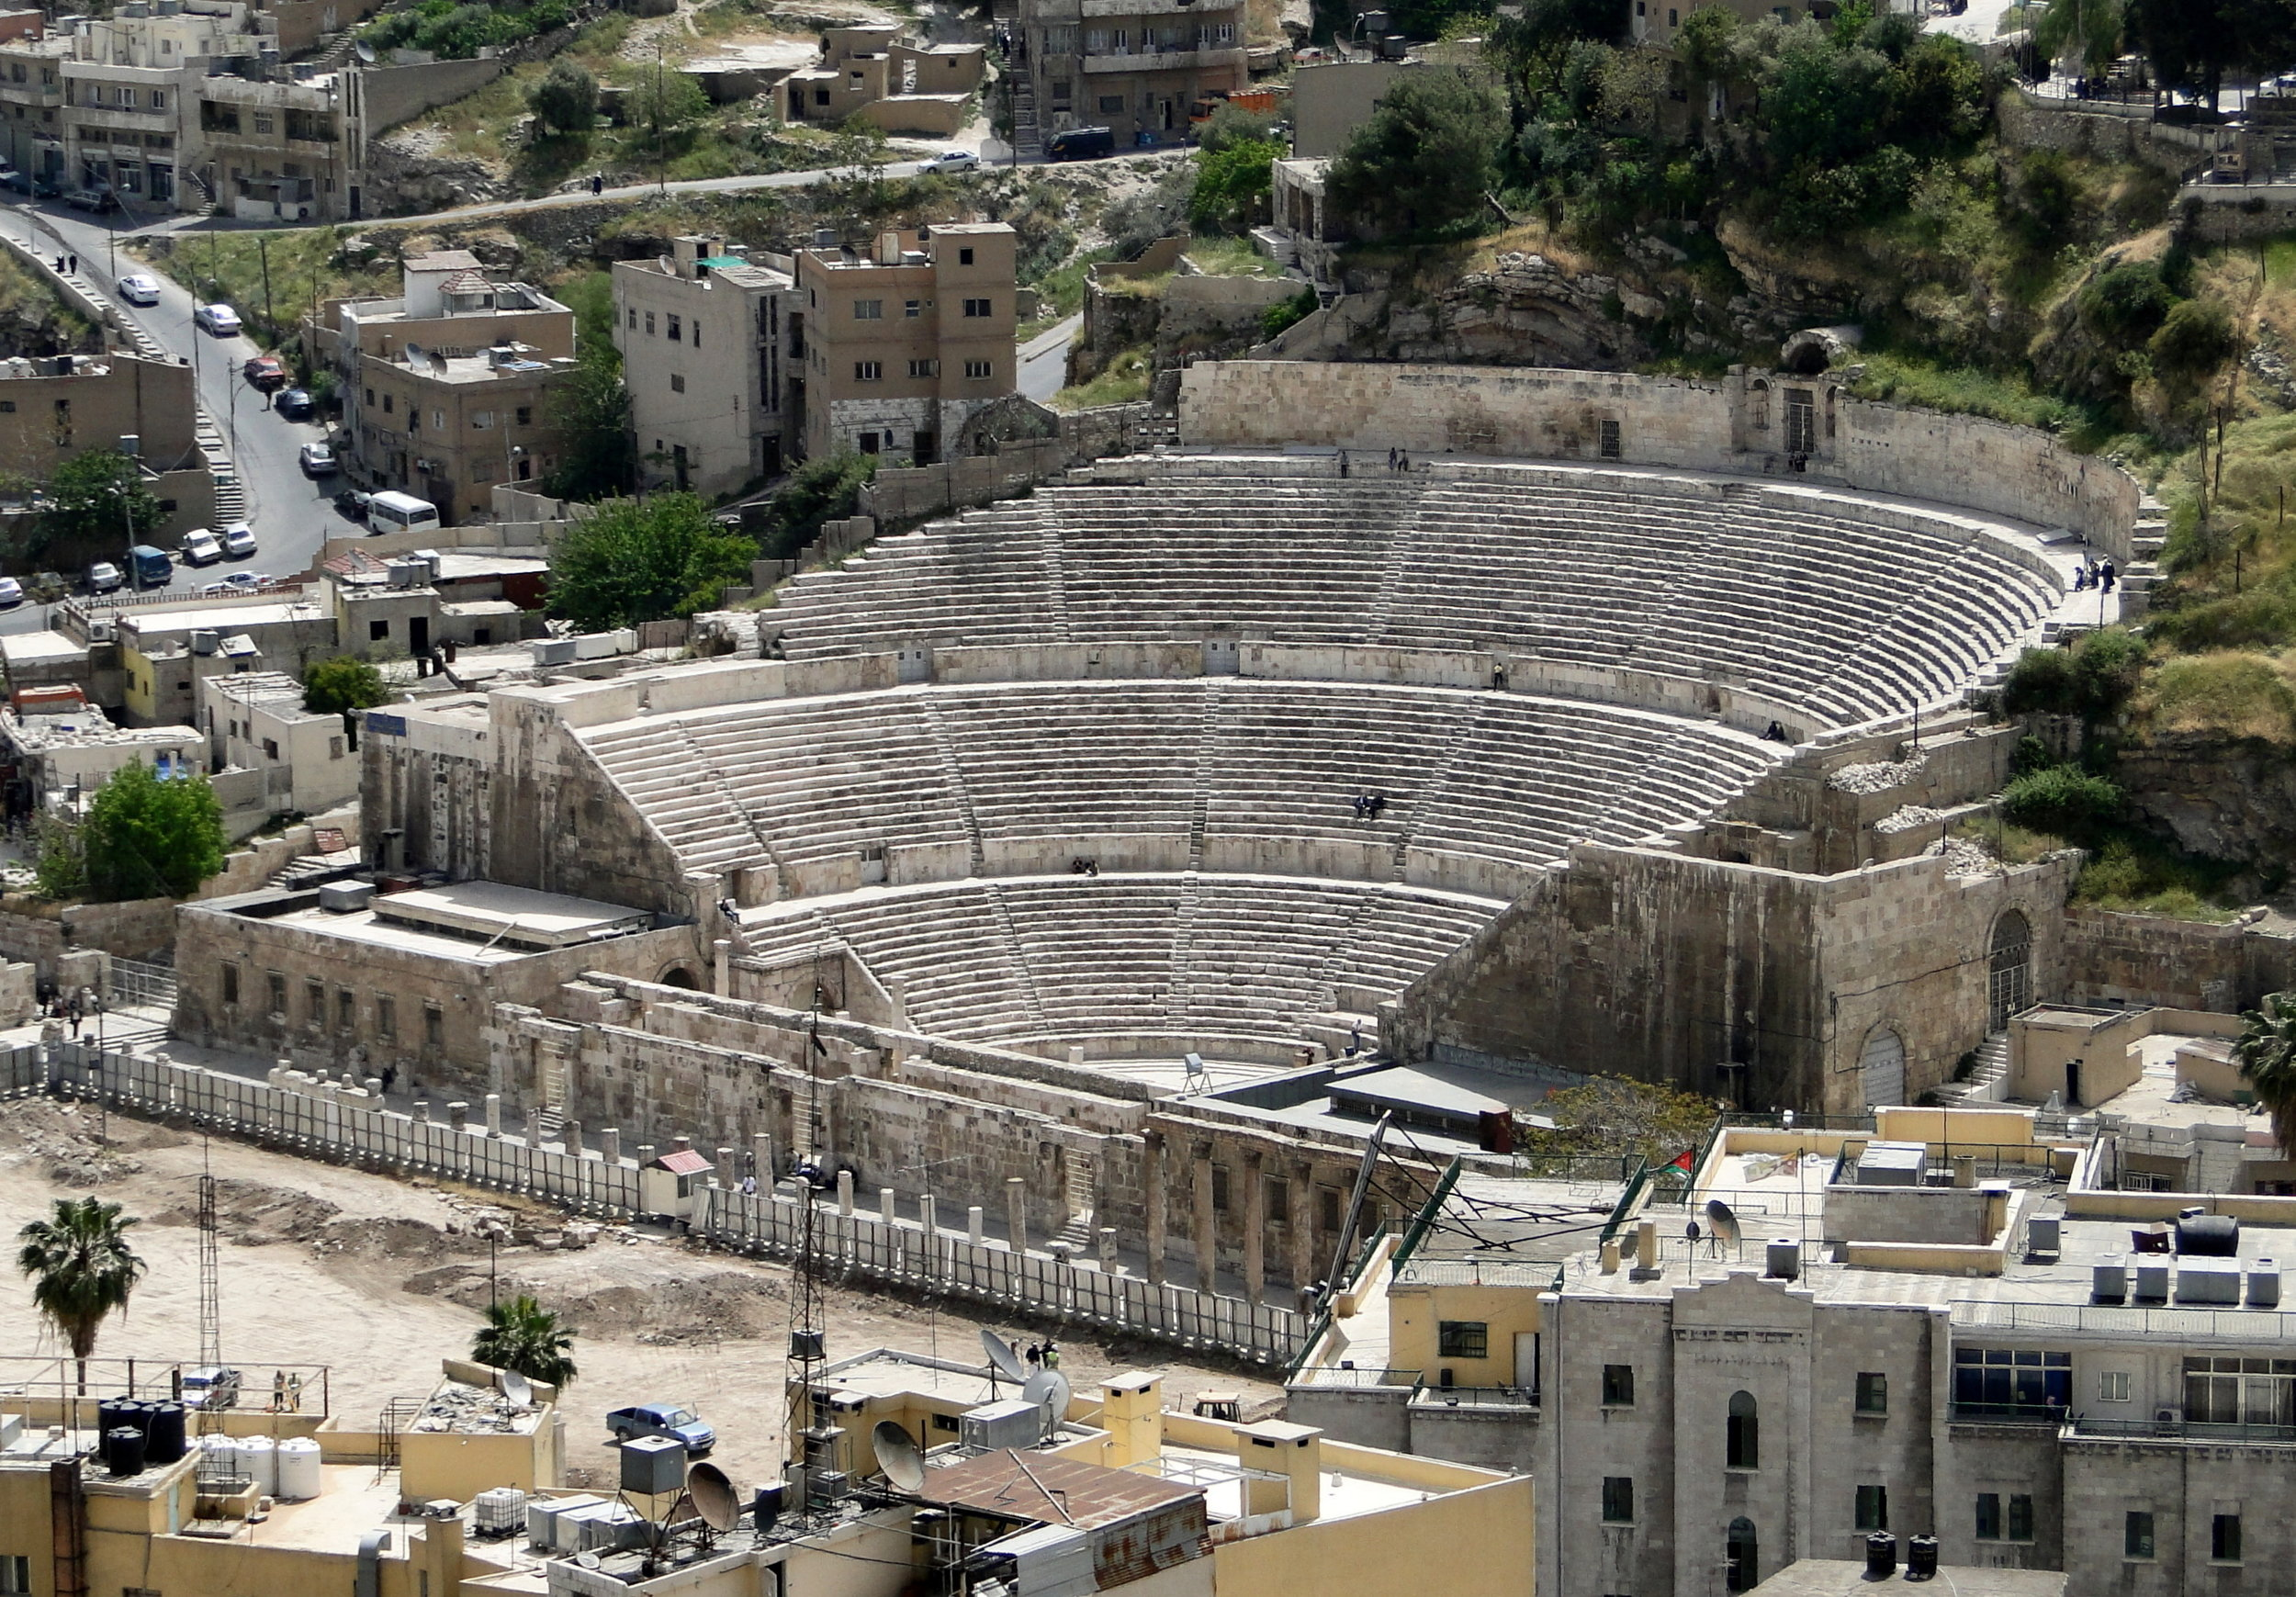 The Roman Theater in Amman. Photo taken by Bernard Gagnon, distributed under  CC BY-SA 4.0  license.